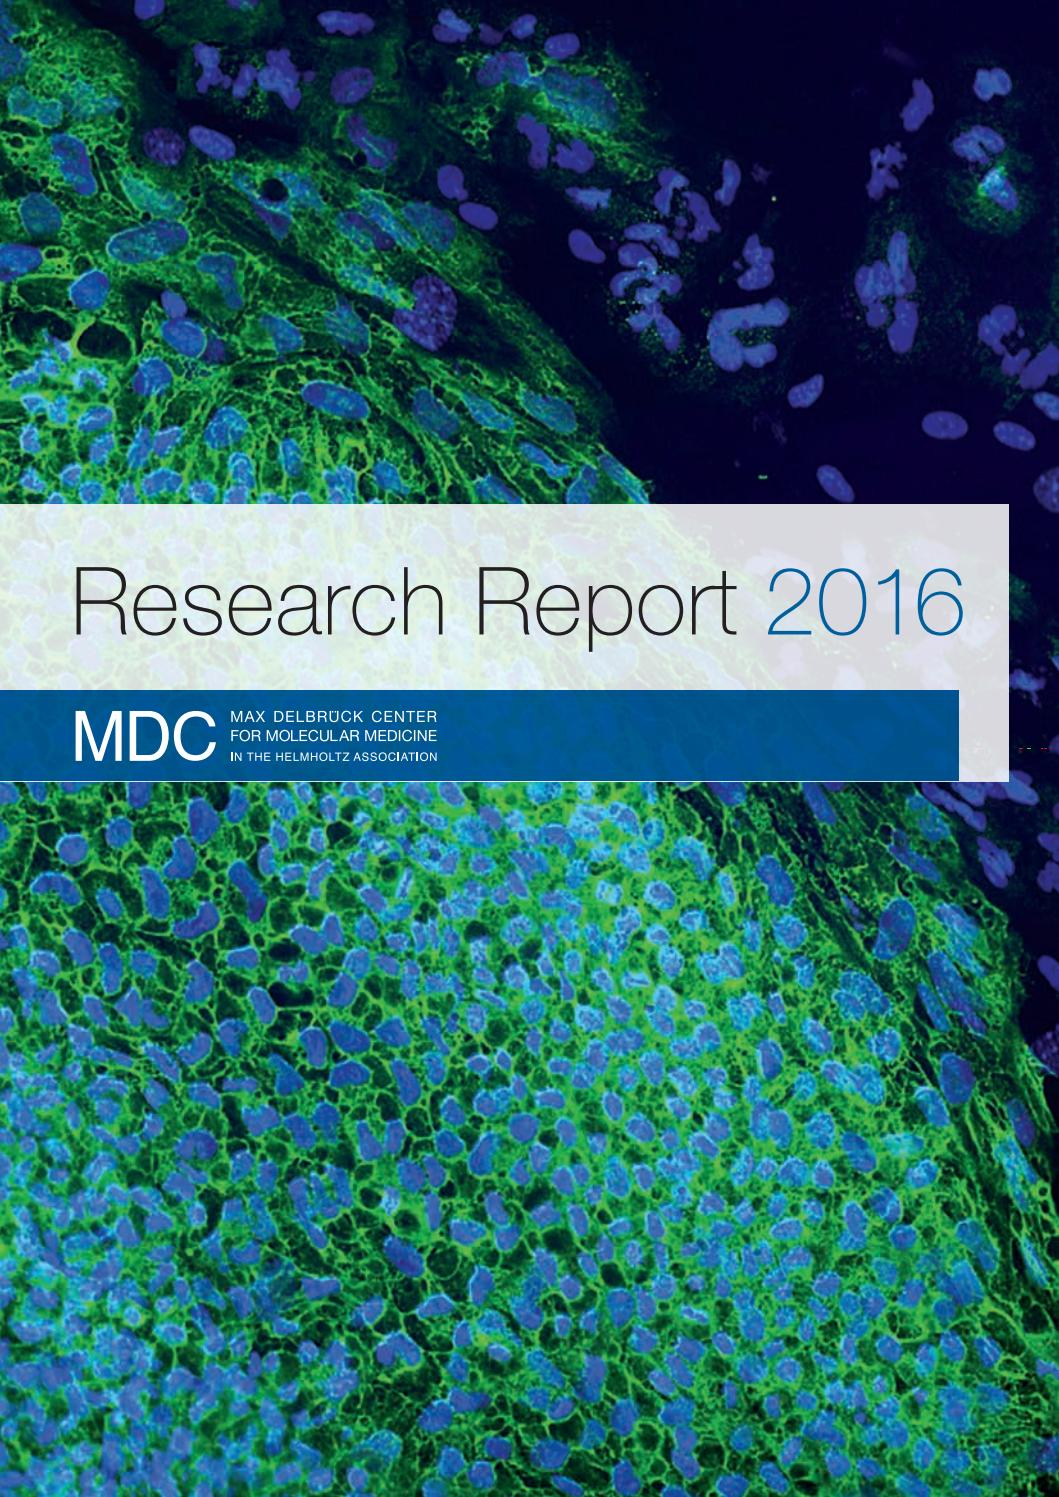 Research Report 2016 By Max Delbrück Center For Molecular Medicine Issuu